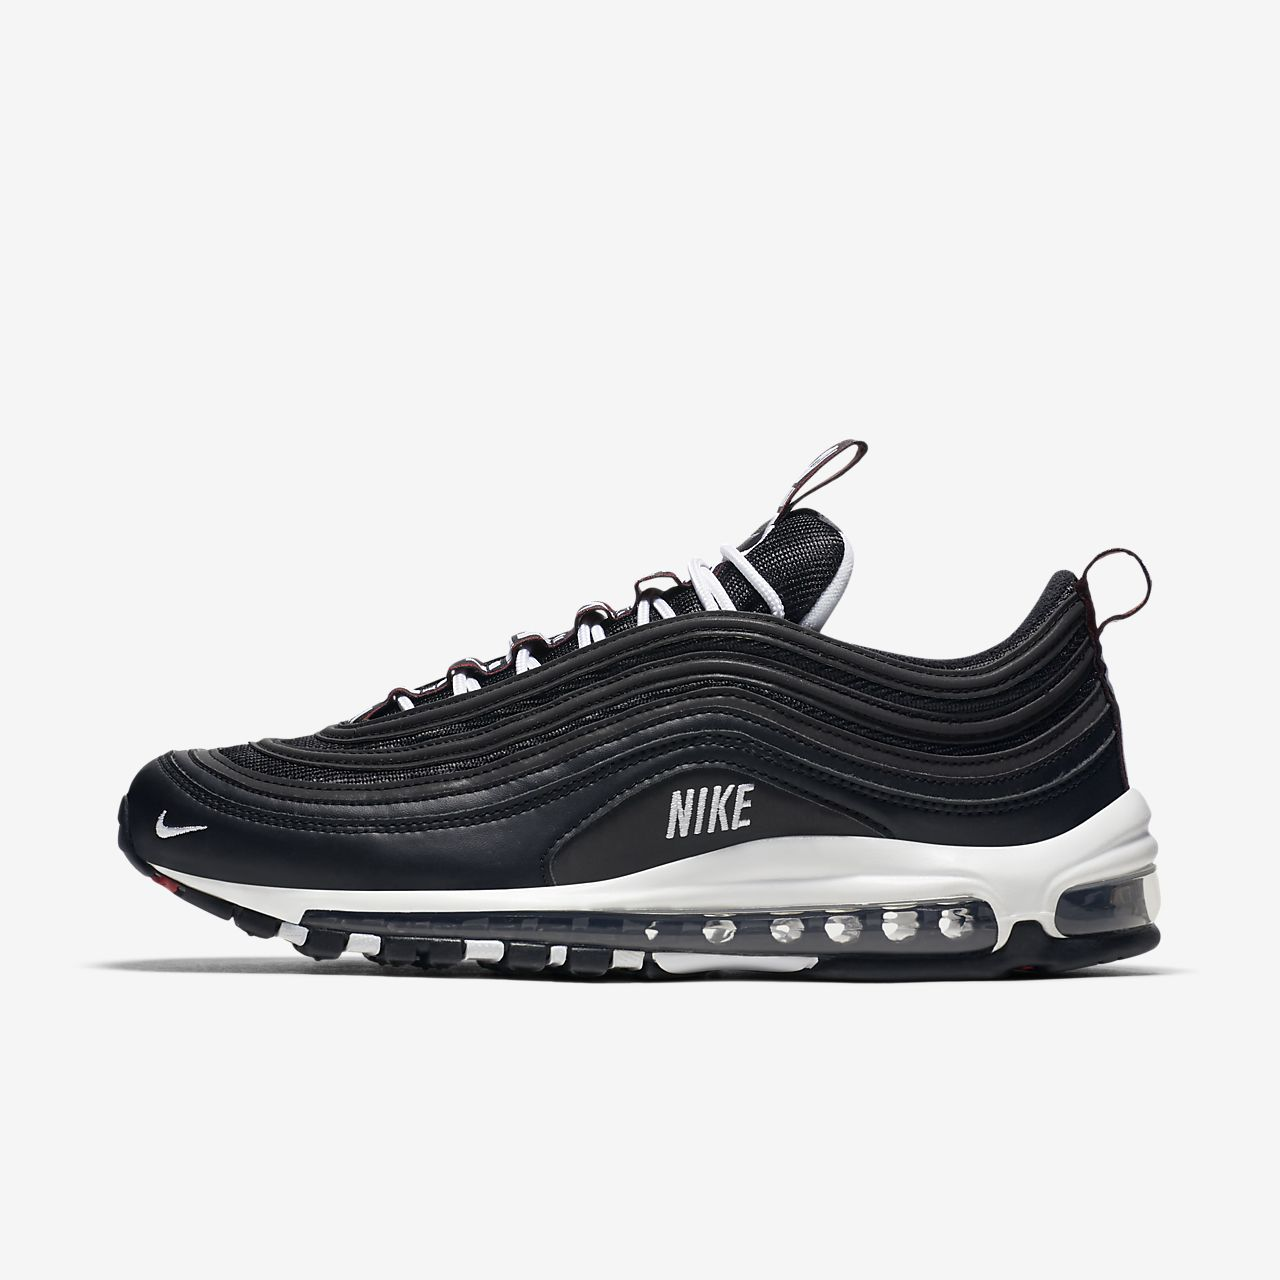 6e1105a931 Nike Air Max 97 Premium Men s Shoe. Nike.com